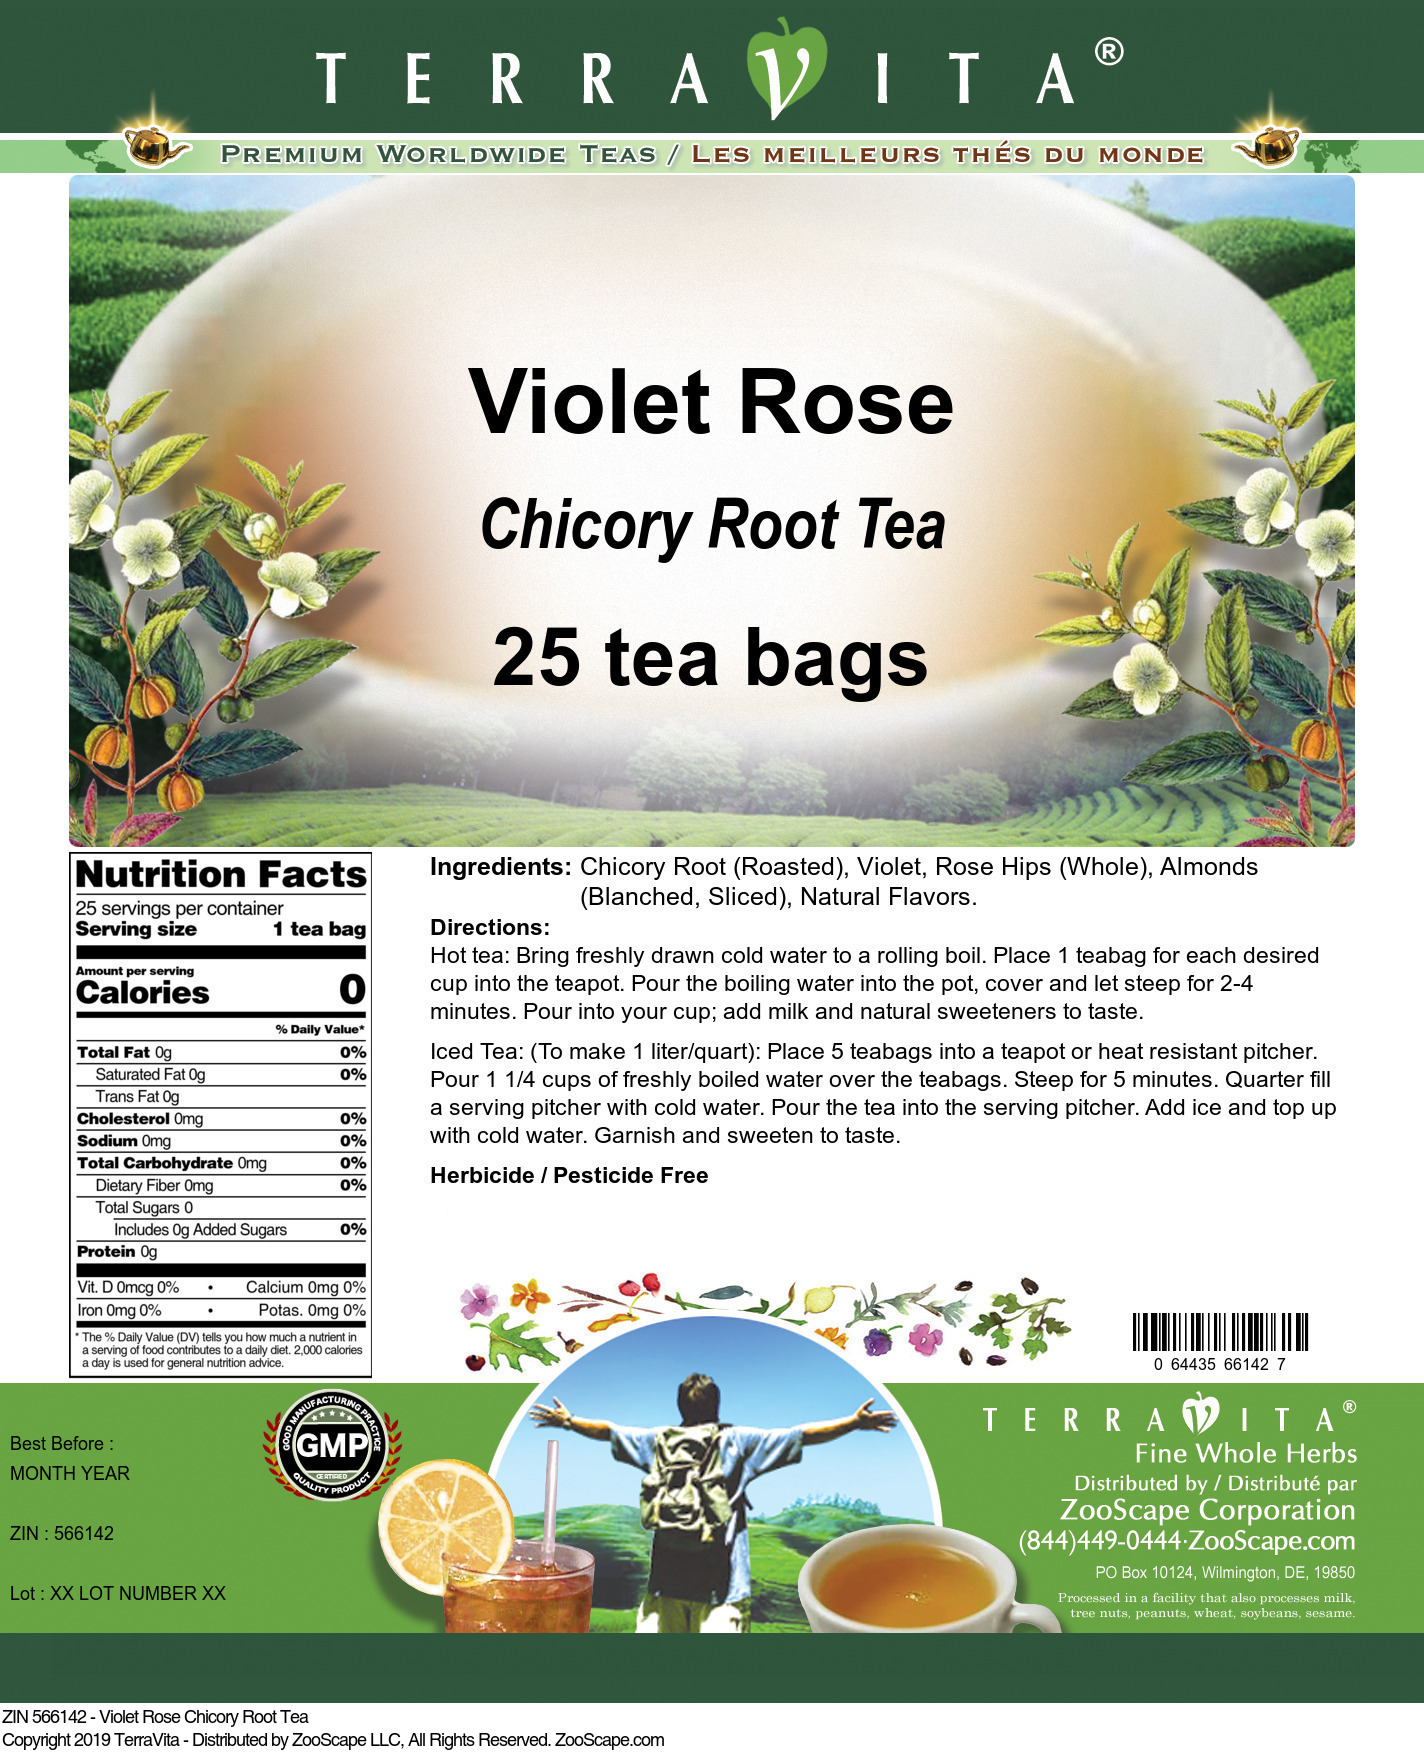 Violet Rose Chicory Root Tea